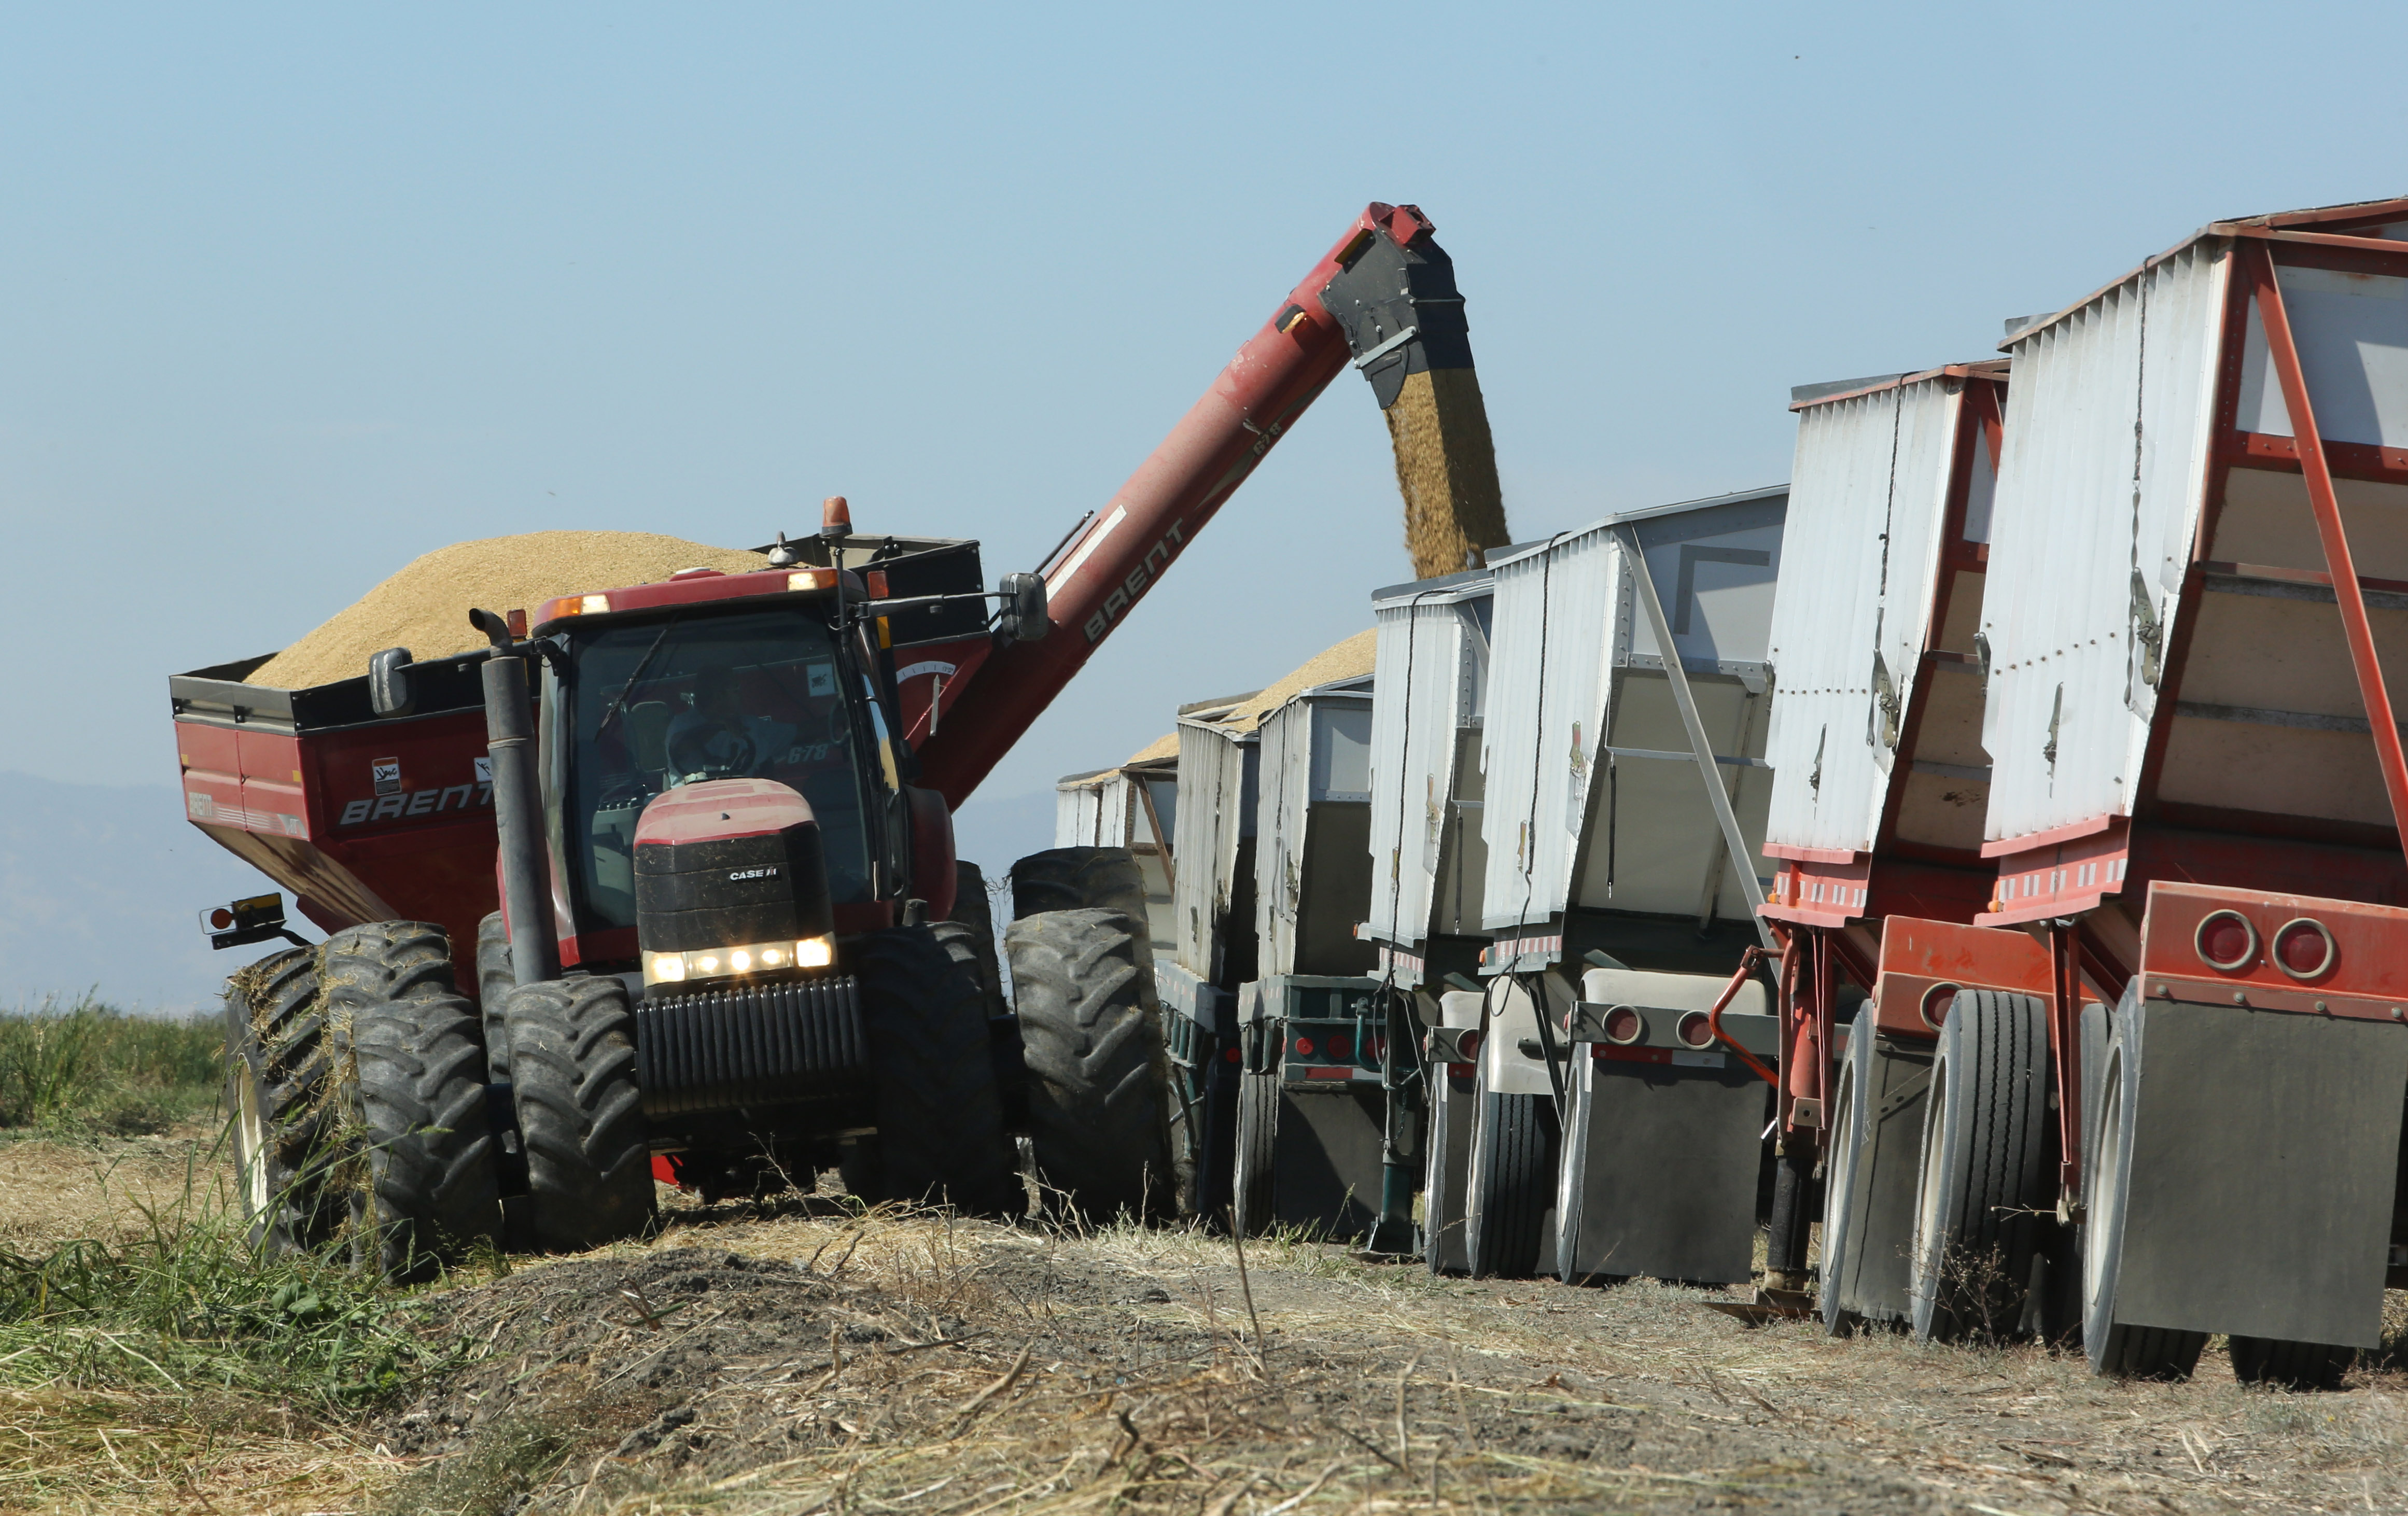 Rice harvested by Mike DeWitt is loaded into trucks near Davis, Calif., Oct. 10, 2014. DeWitt is among the Sacramento Valley farmers who planted 25 percent less rice than normal because of water cutbacks.